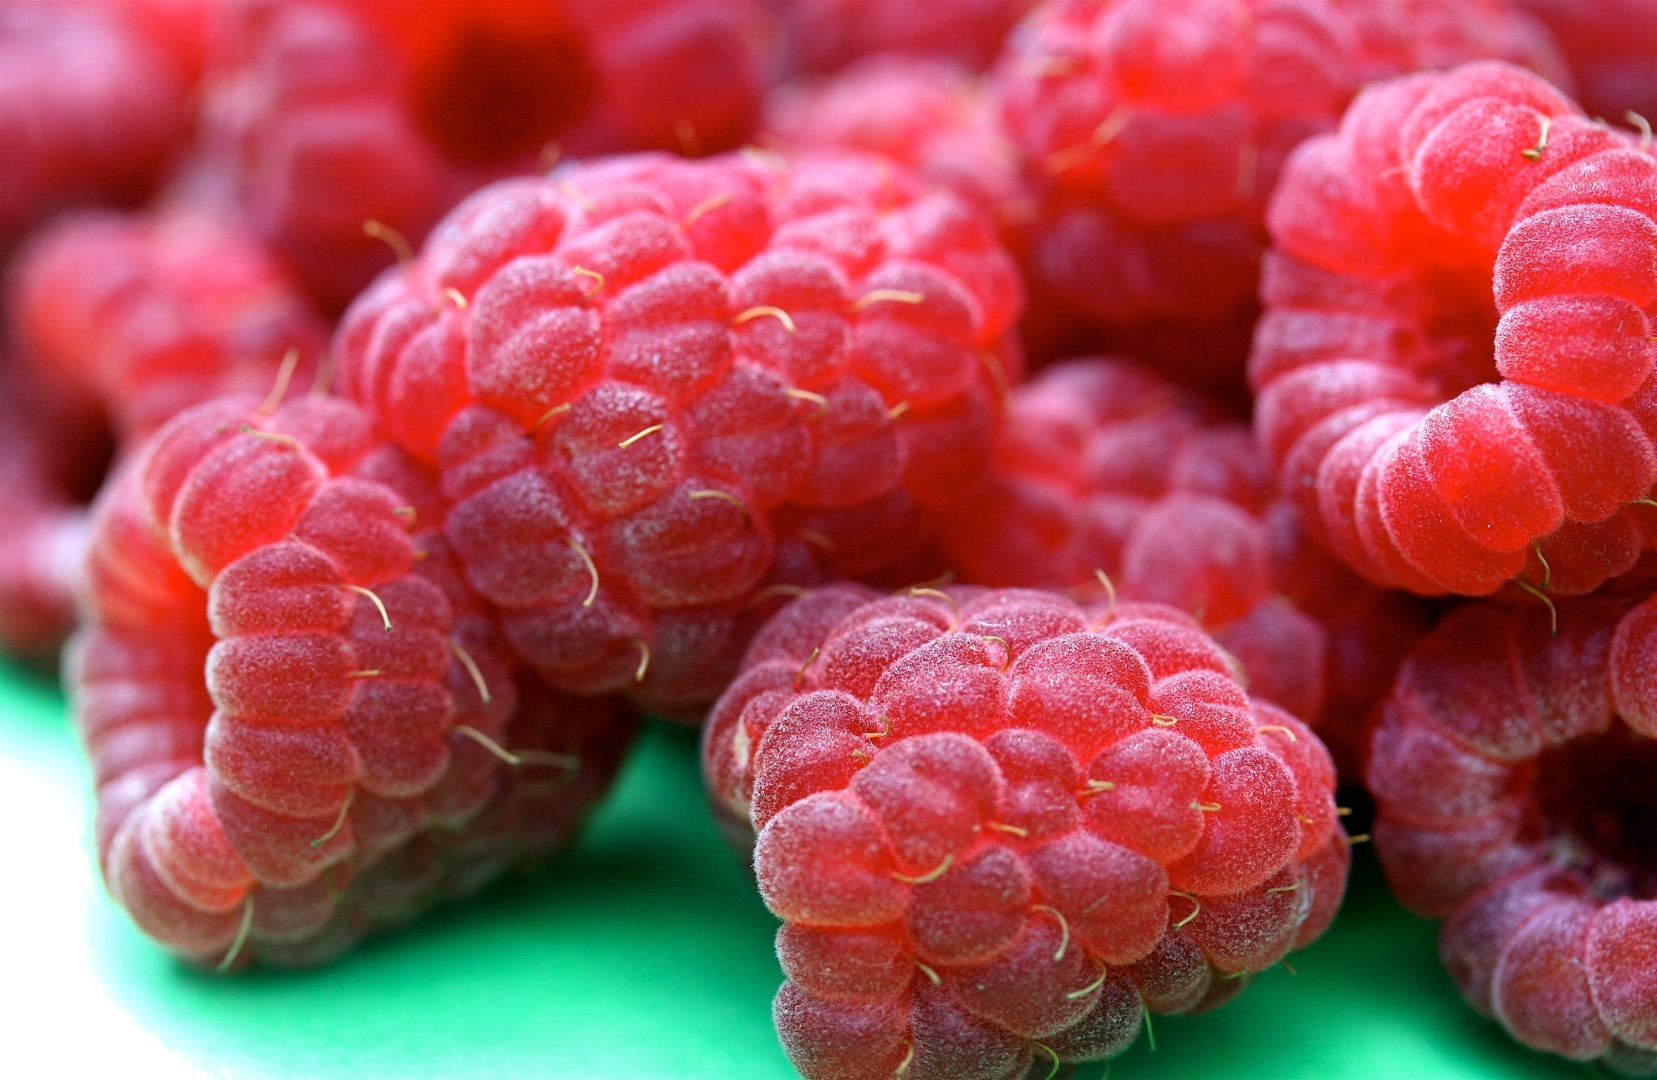 Raspberries by Liz West (Muffet on Flickr)